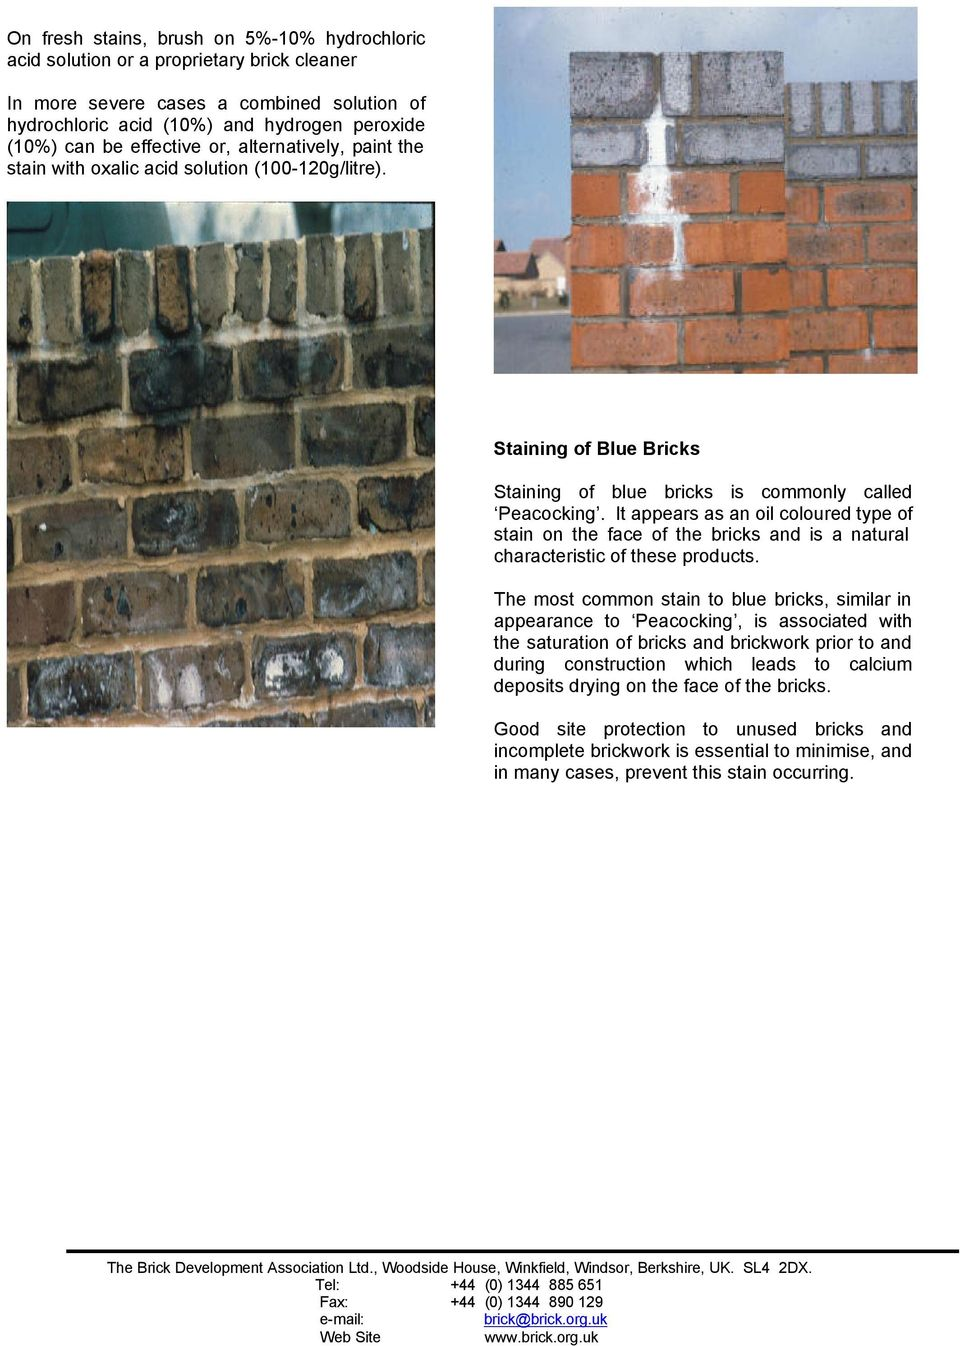 It appears as an oil coloured type of stain on the face of the bricks and is a natural characteristic of these products.